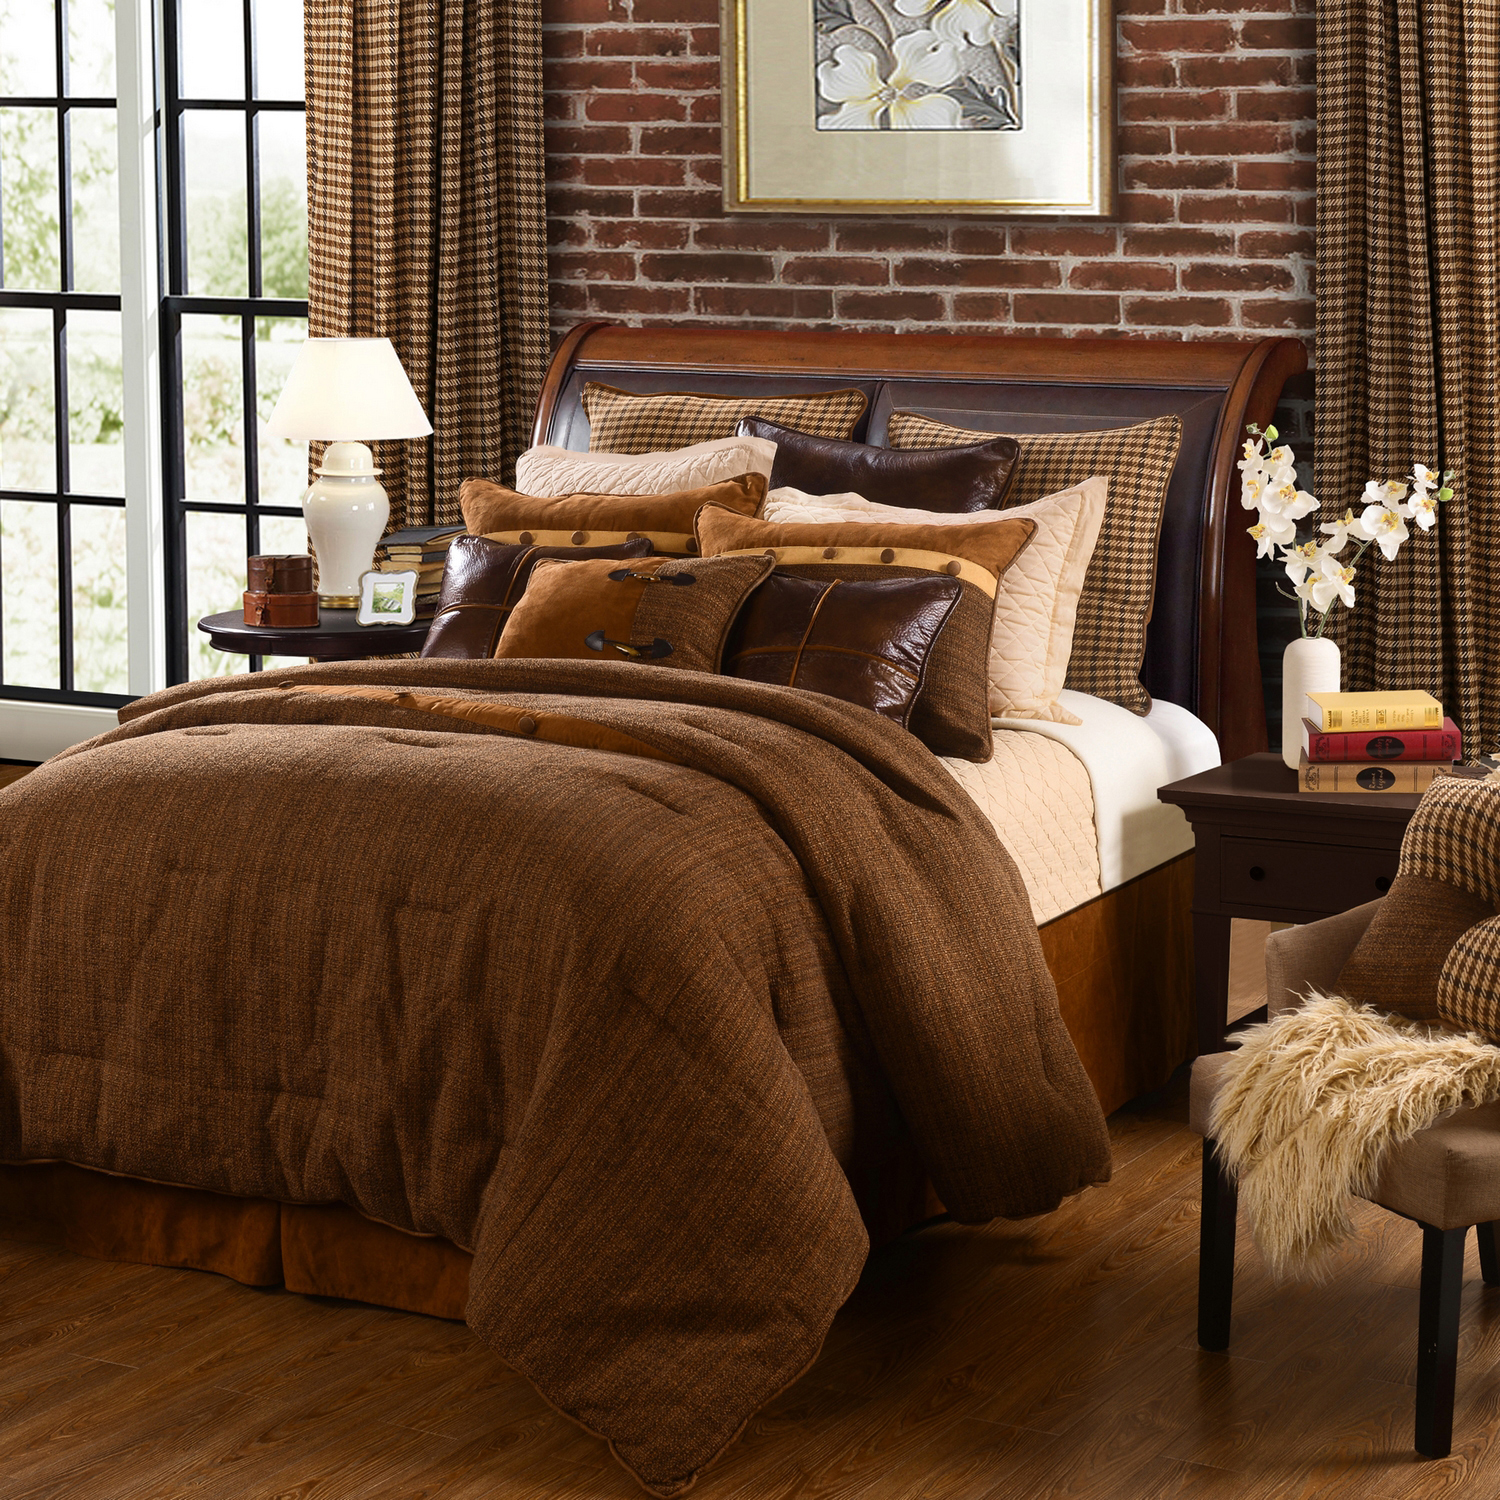 Bedding Decor: Crestwood By HiEnd Accents HomeMax By HiEnd Accents